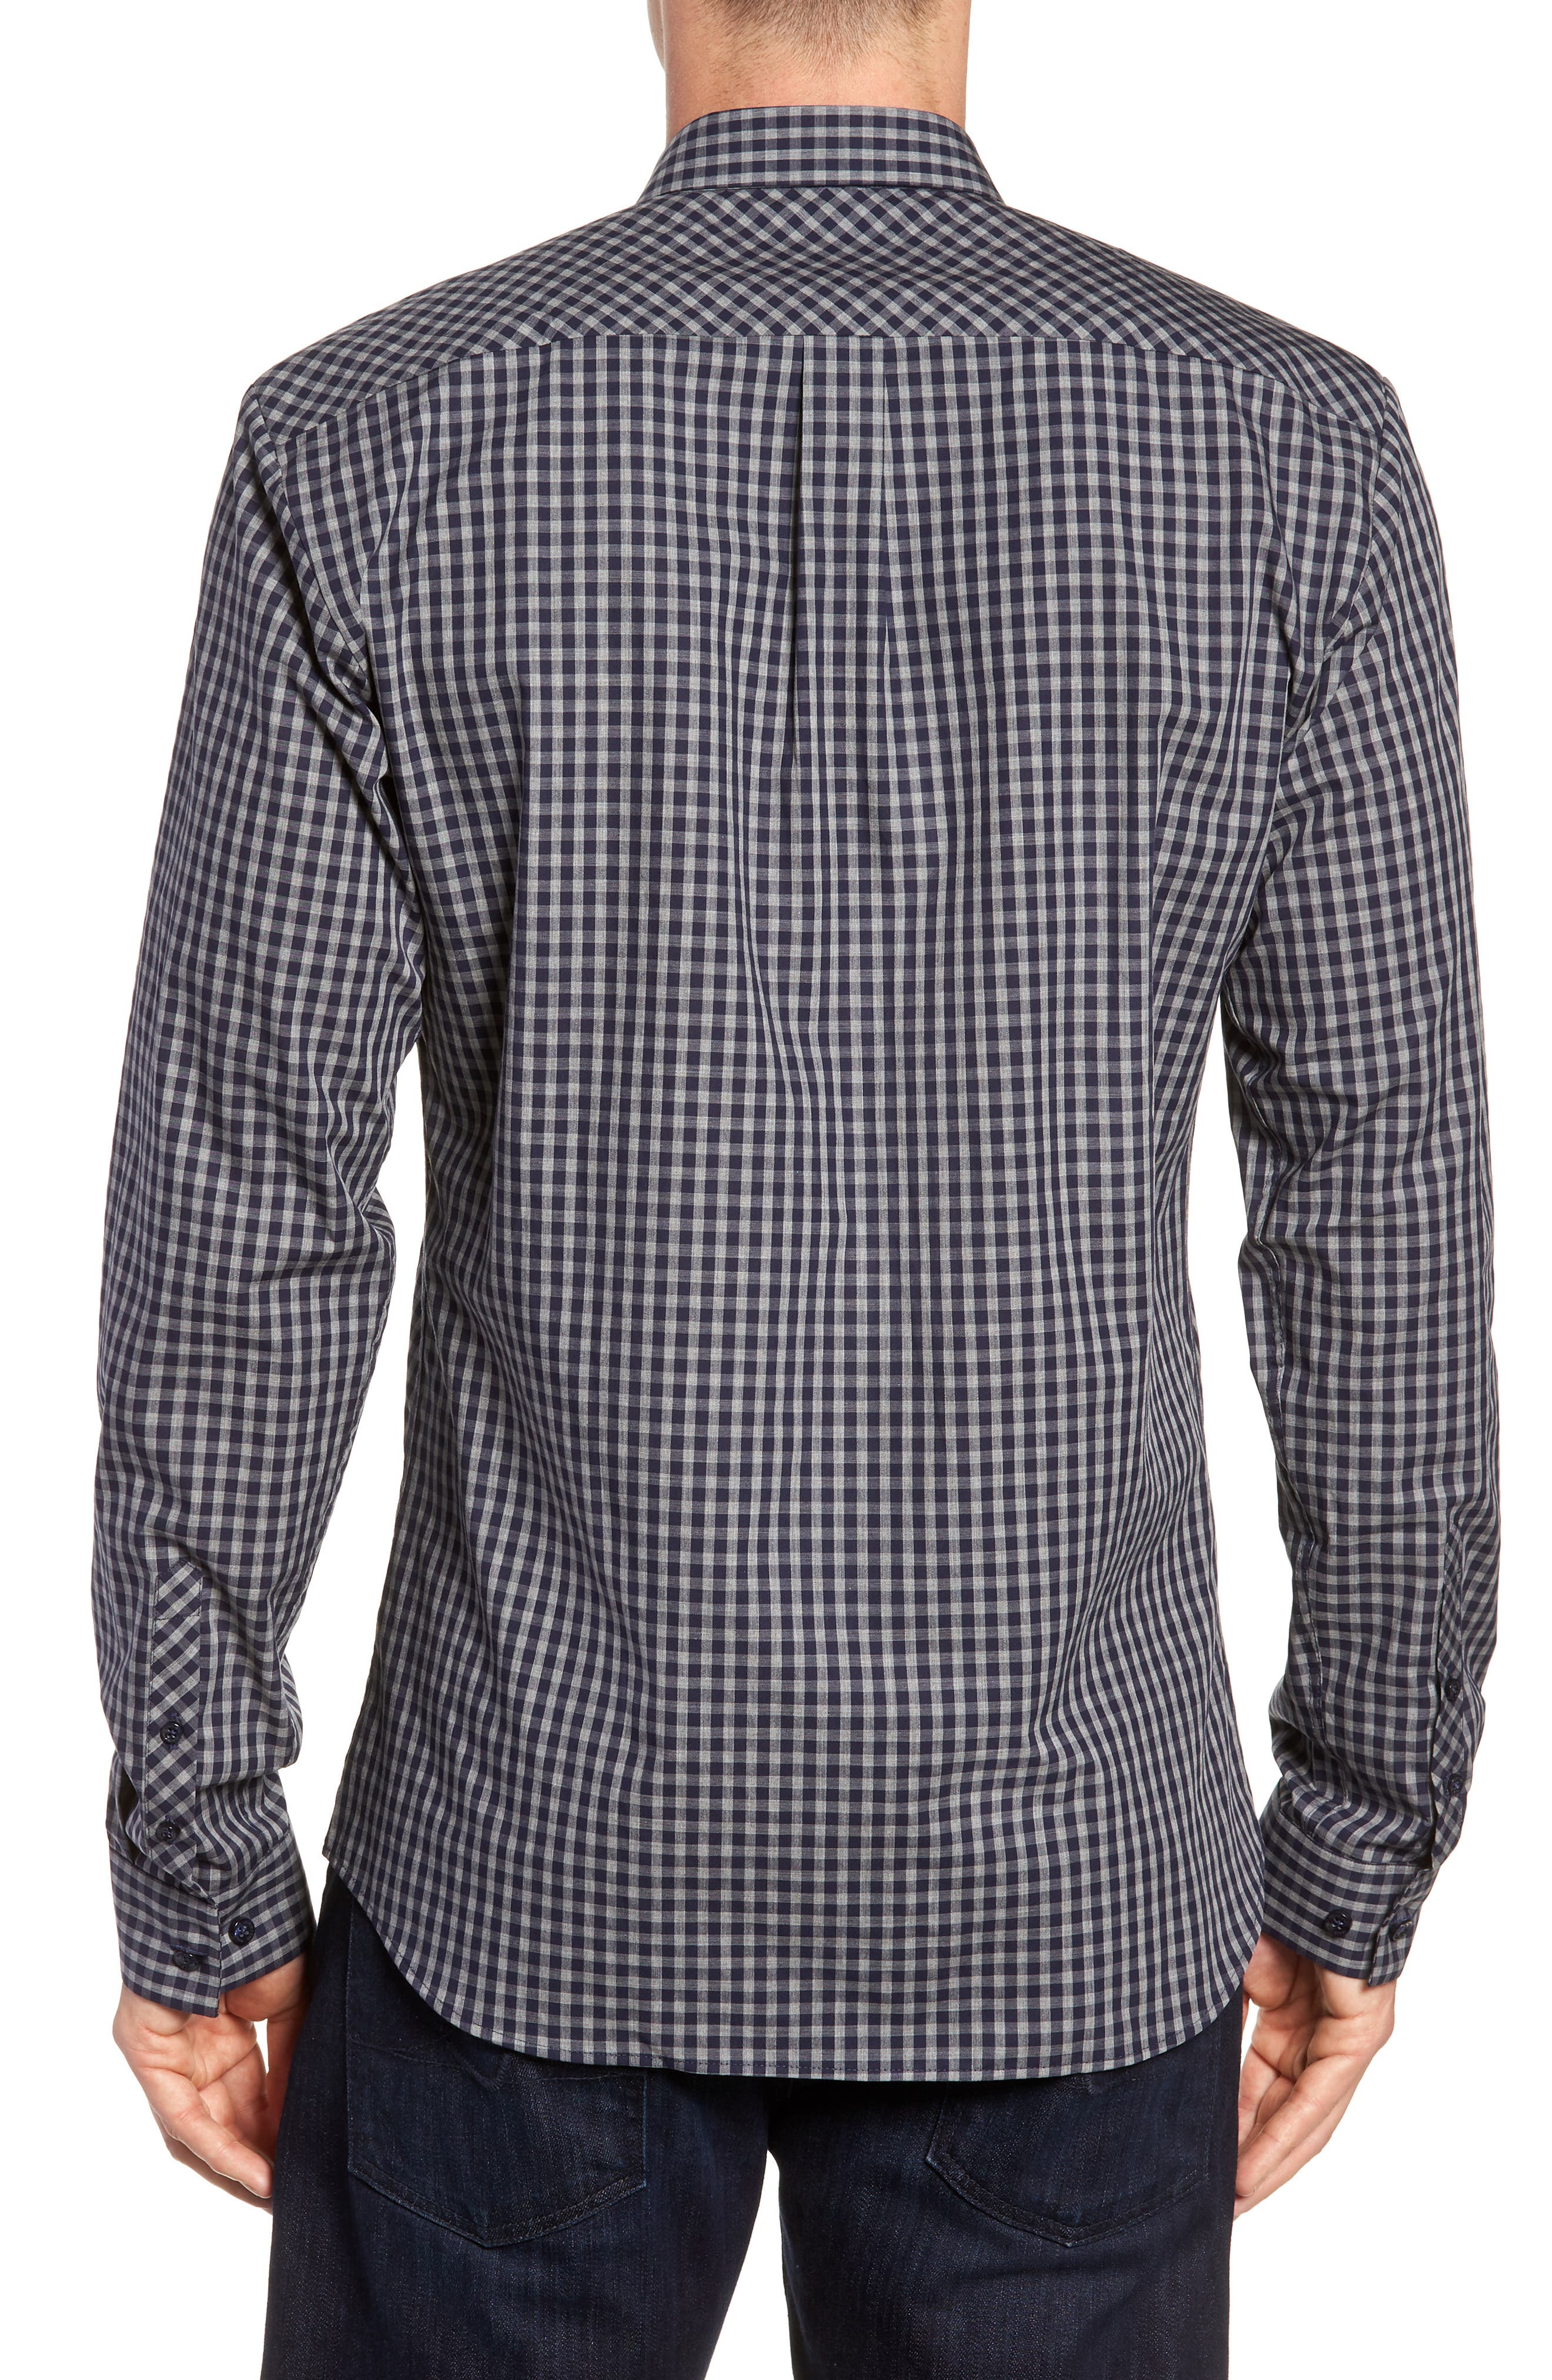 Trim Fit Sport Shirt,                             Alternate thumbnail 3, color,                             Navy Grey Check